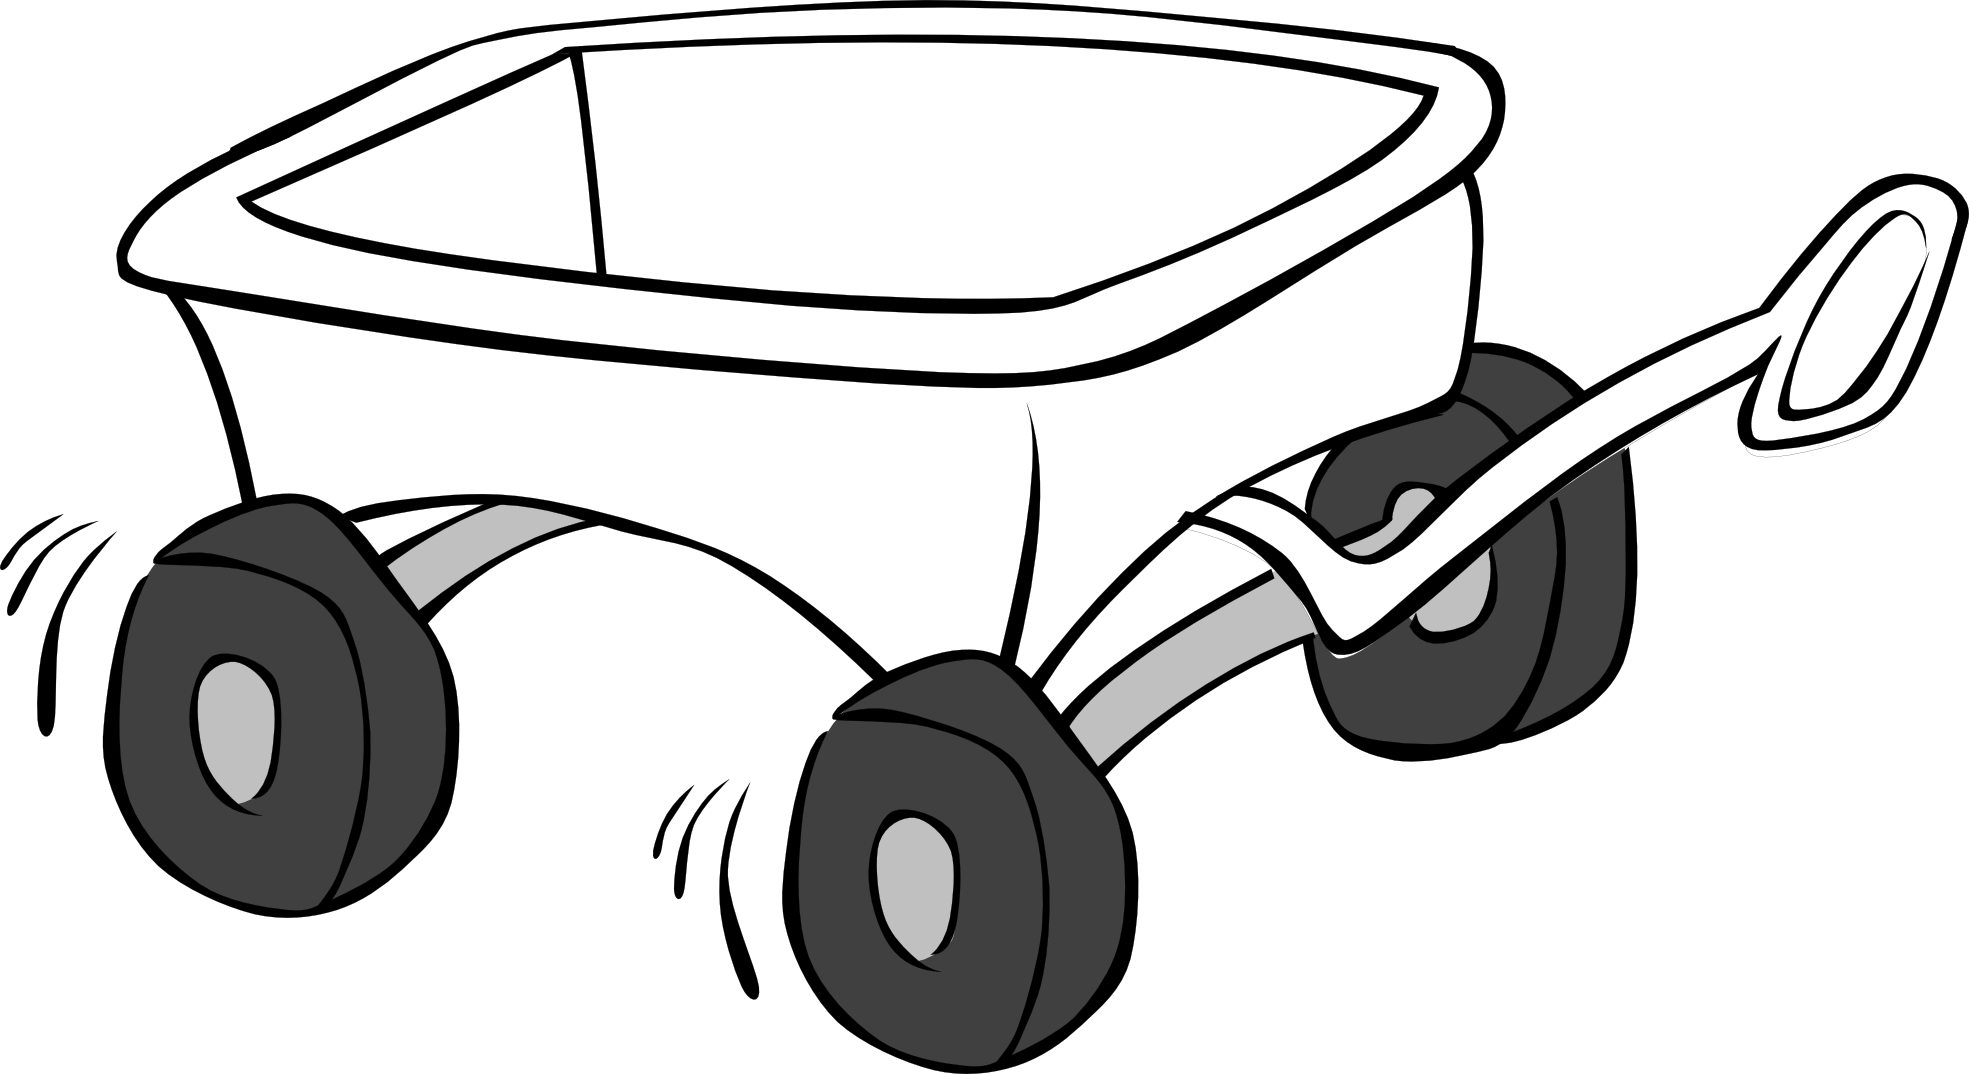 Wago clipart black and white images gallery for Free.